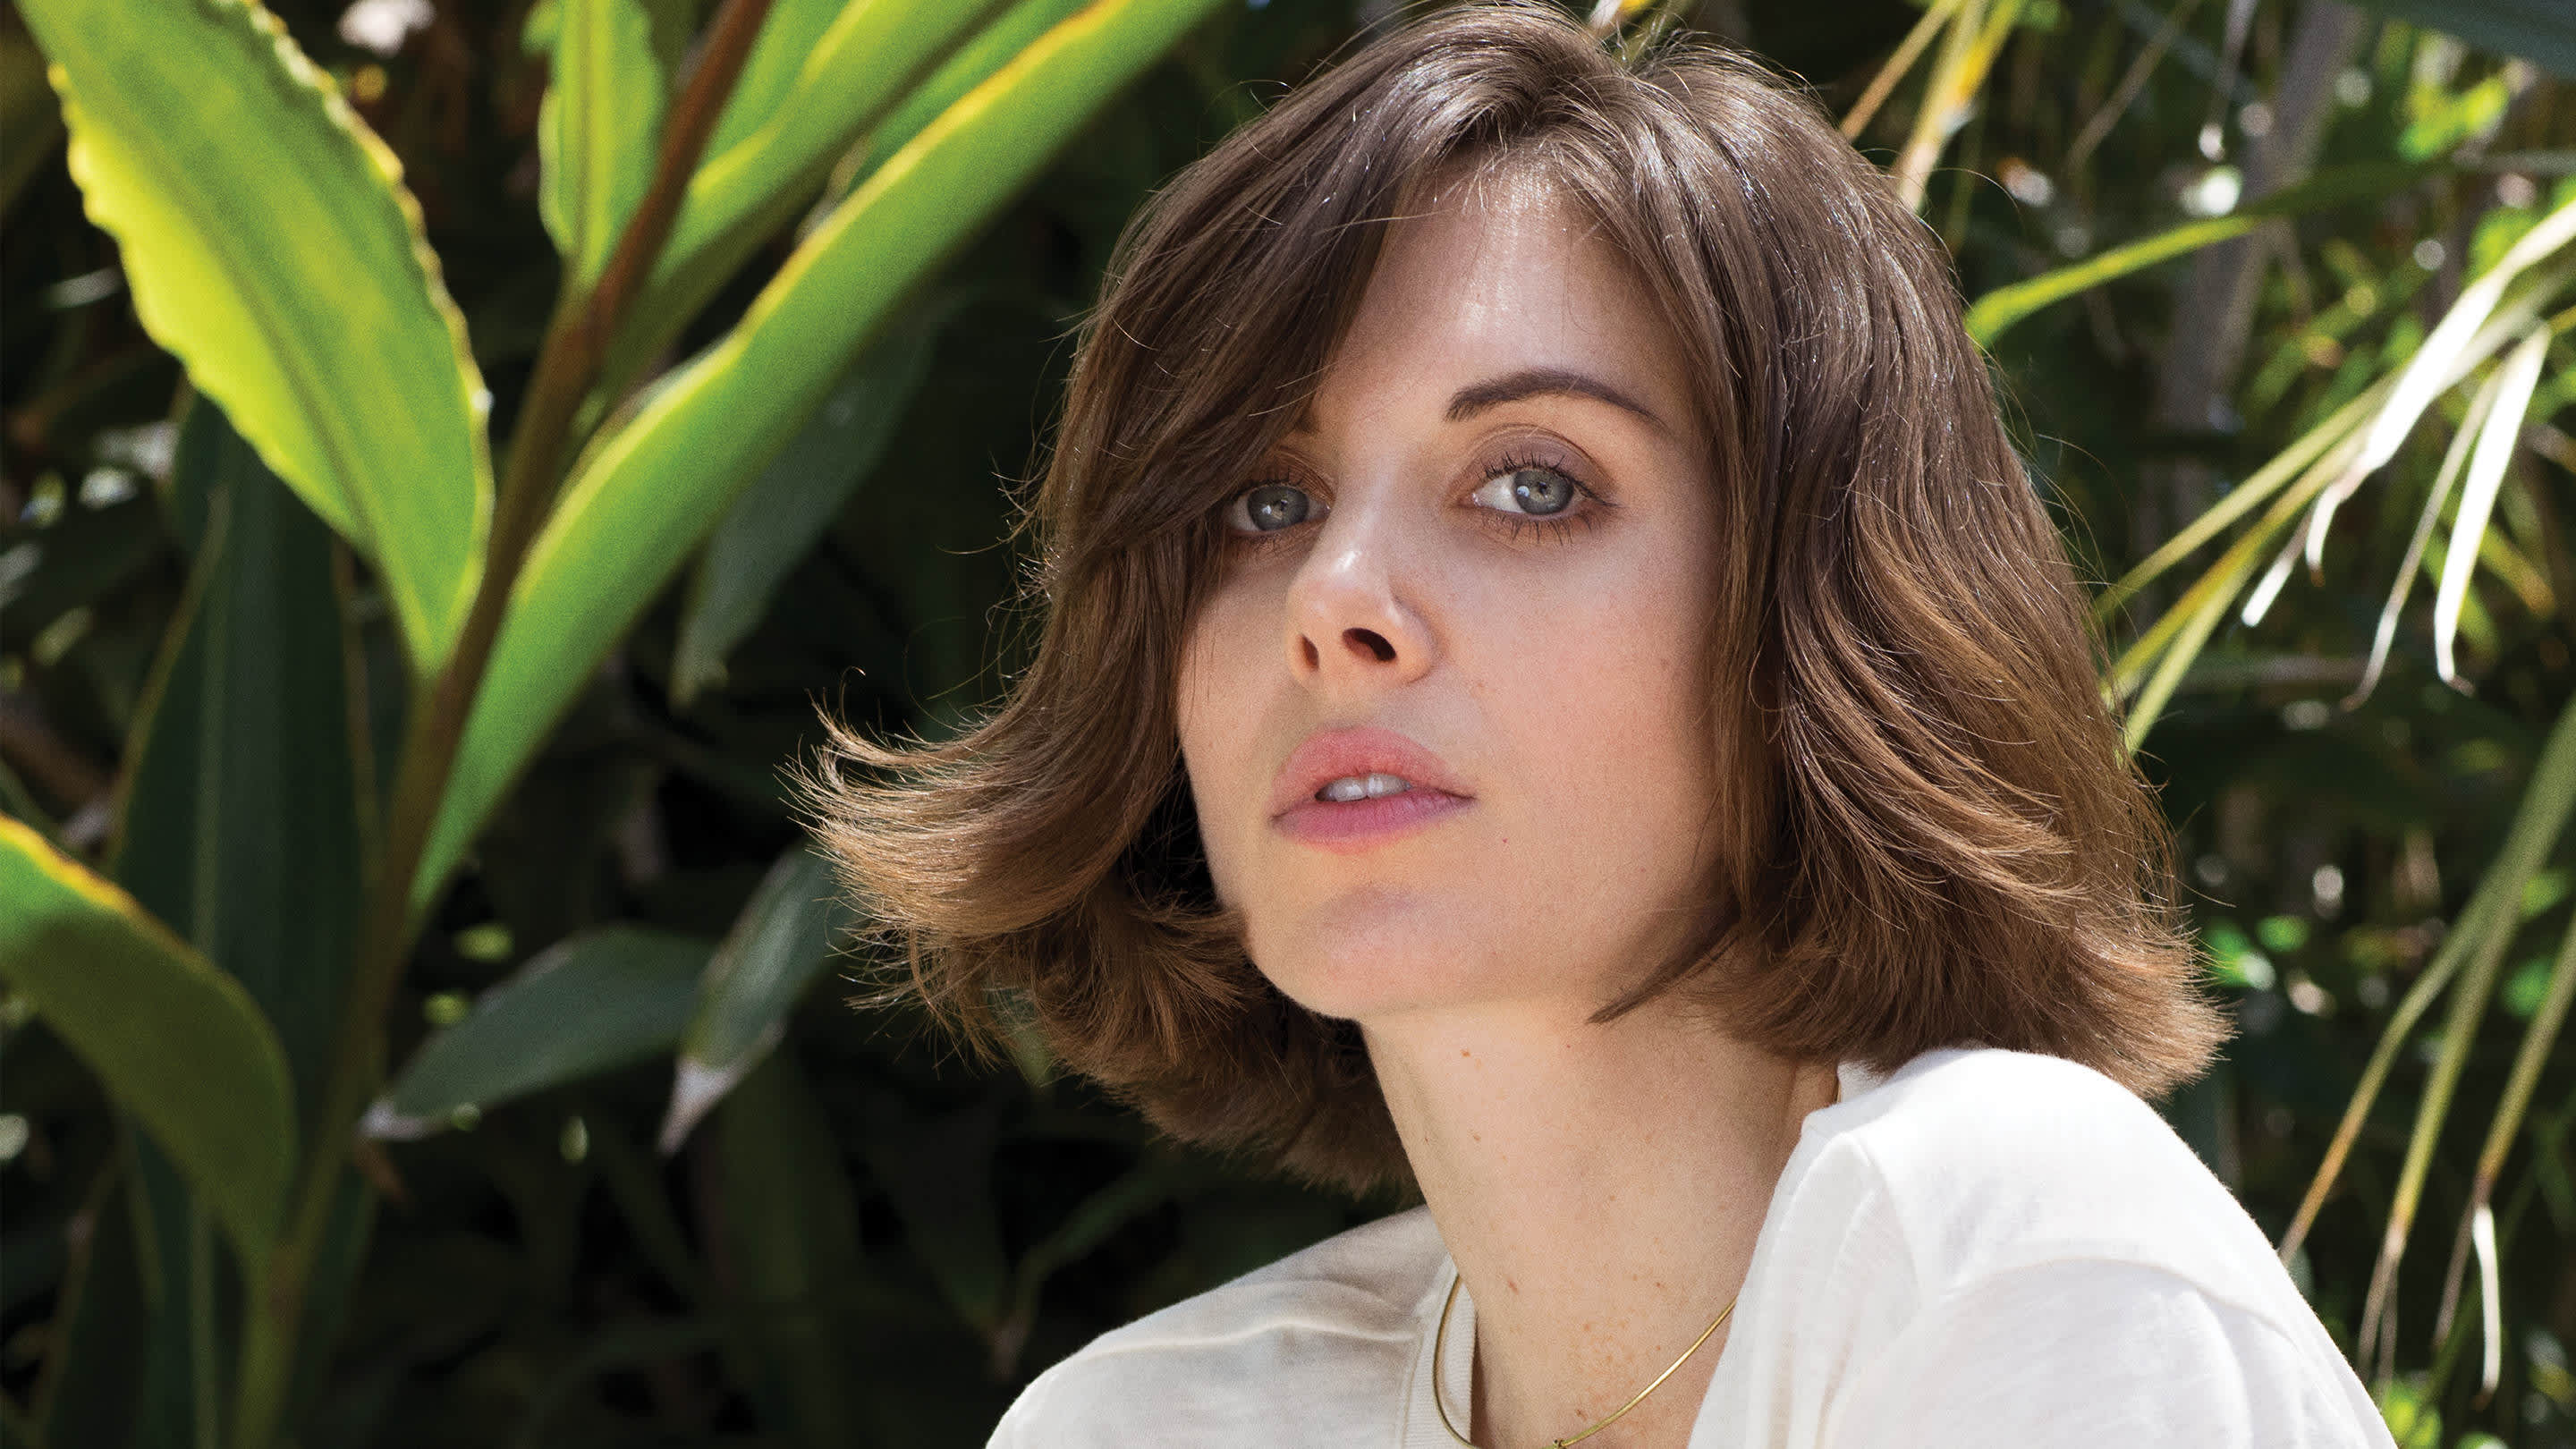 Alison Victoria Naked alison brie talks going nude, wrestling in 2016 playboy 20q